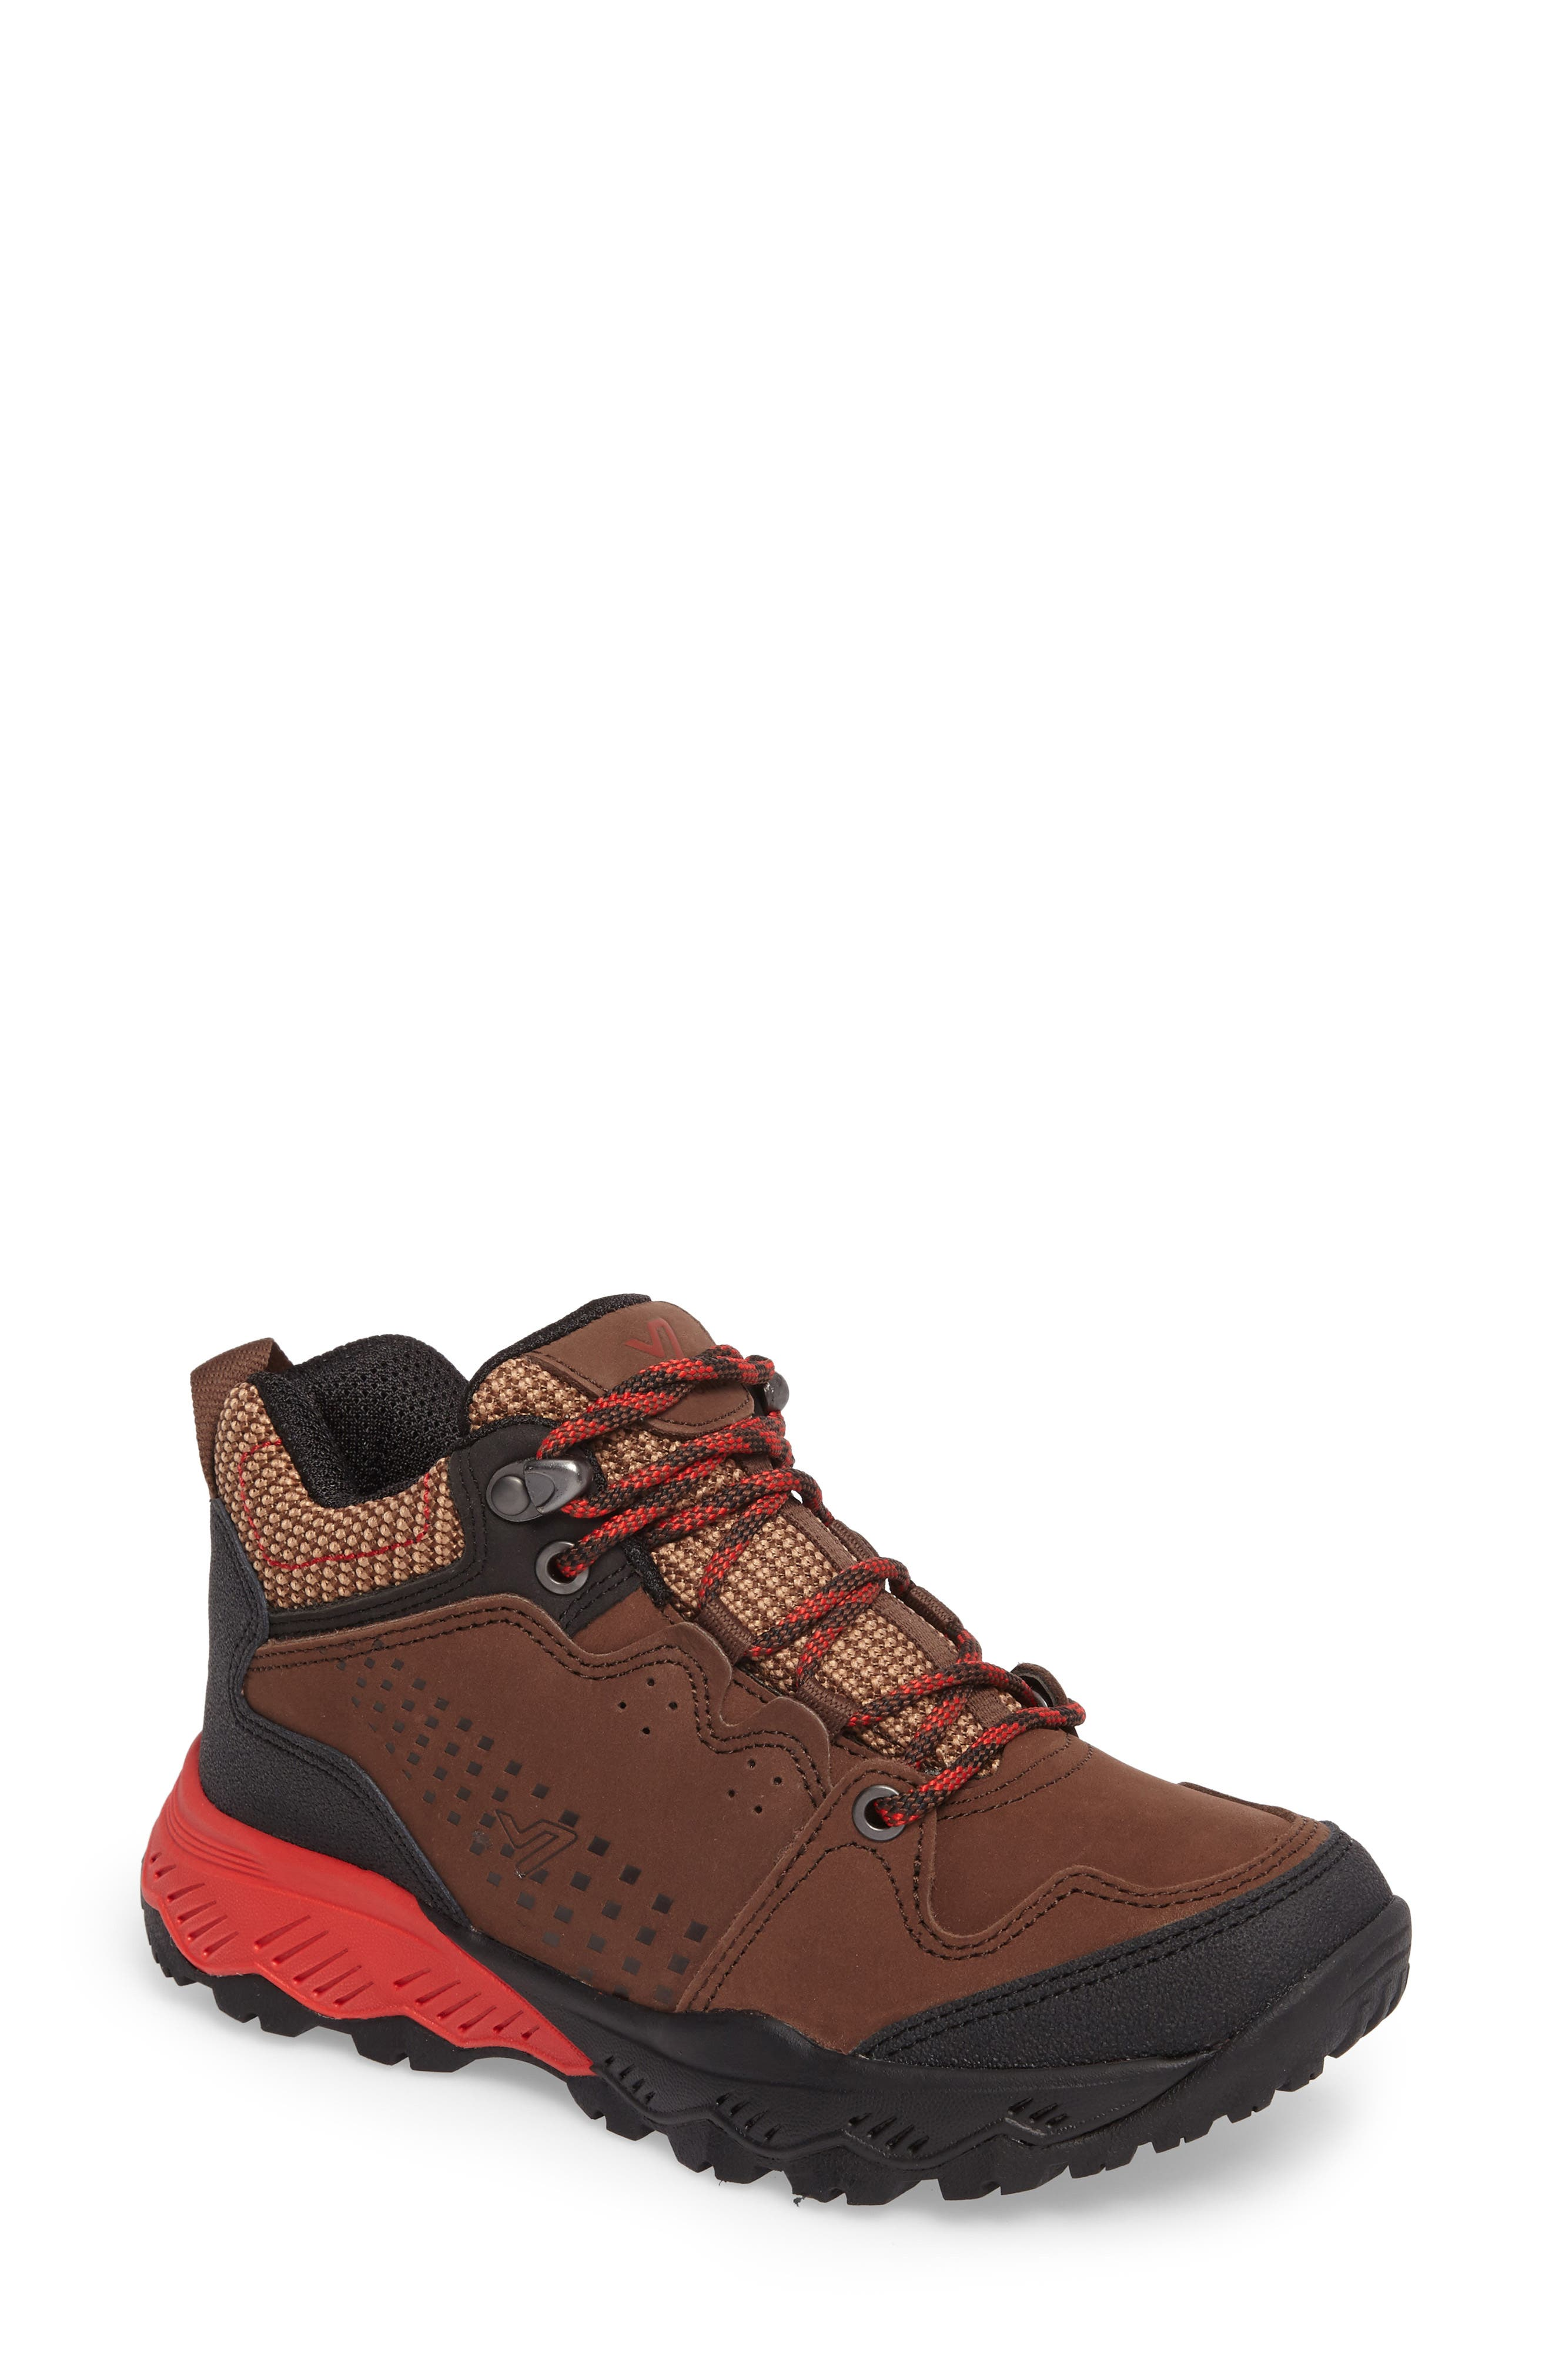 Everett Hiking Shoe,                             Main thumbnail 1, color,                             Brown / Red Leather